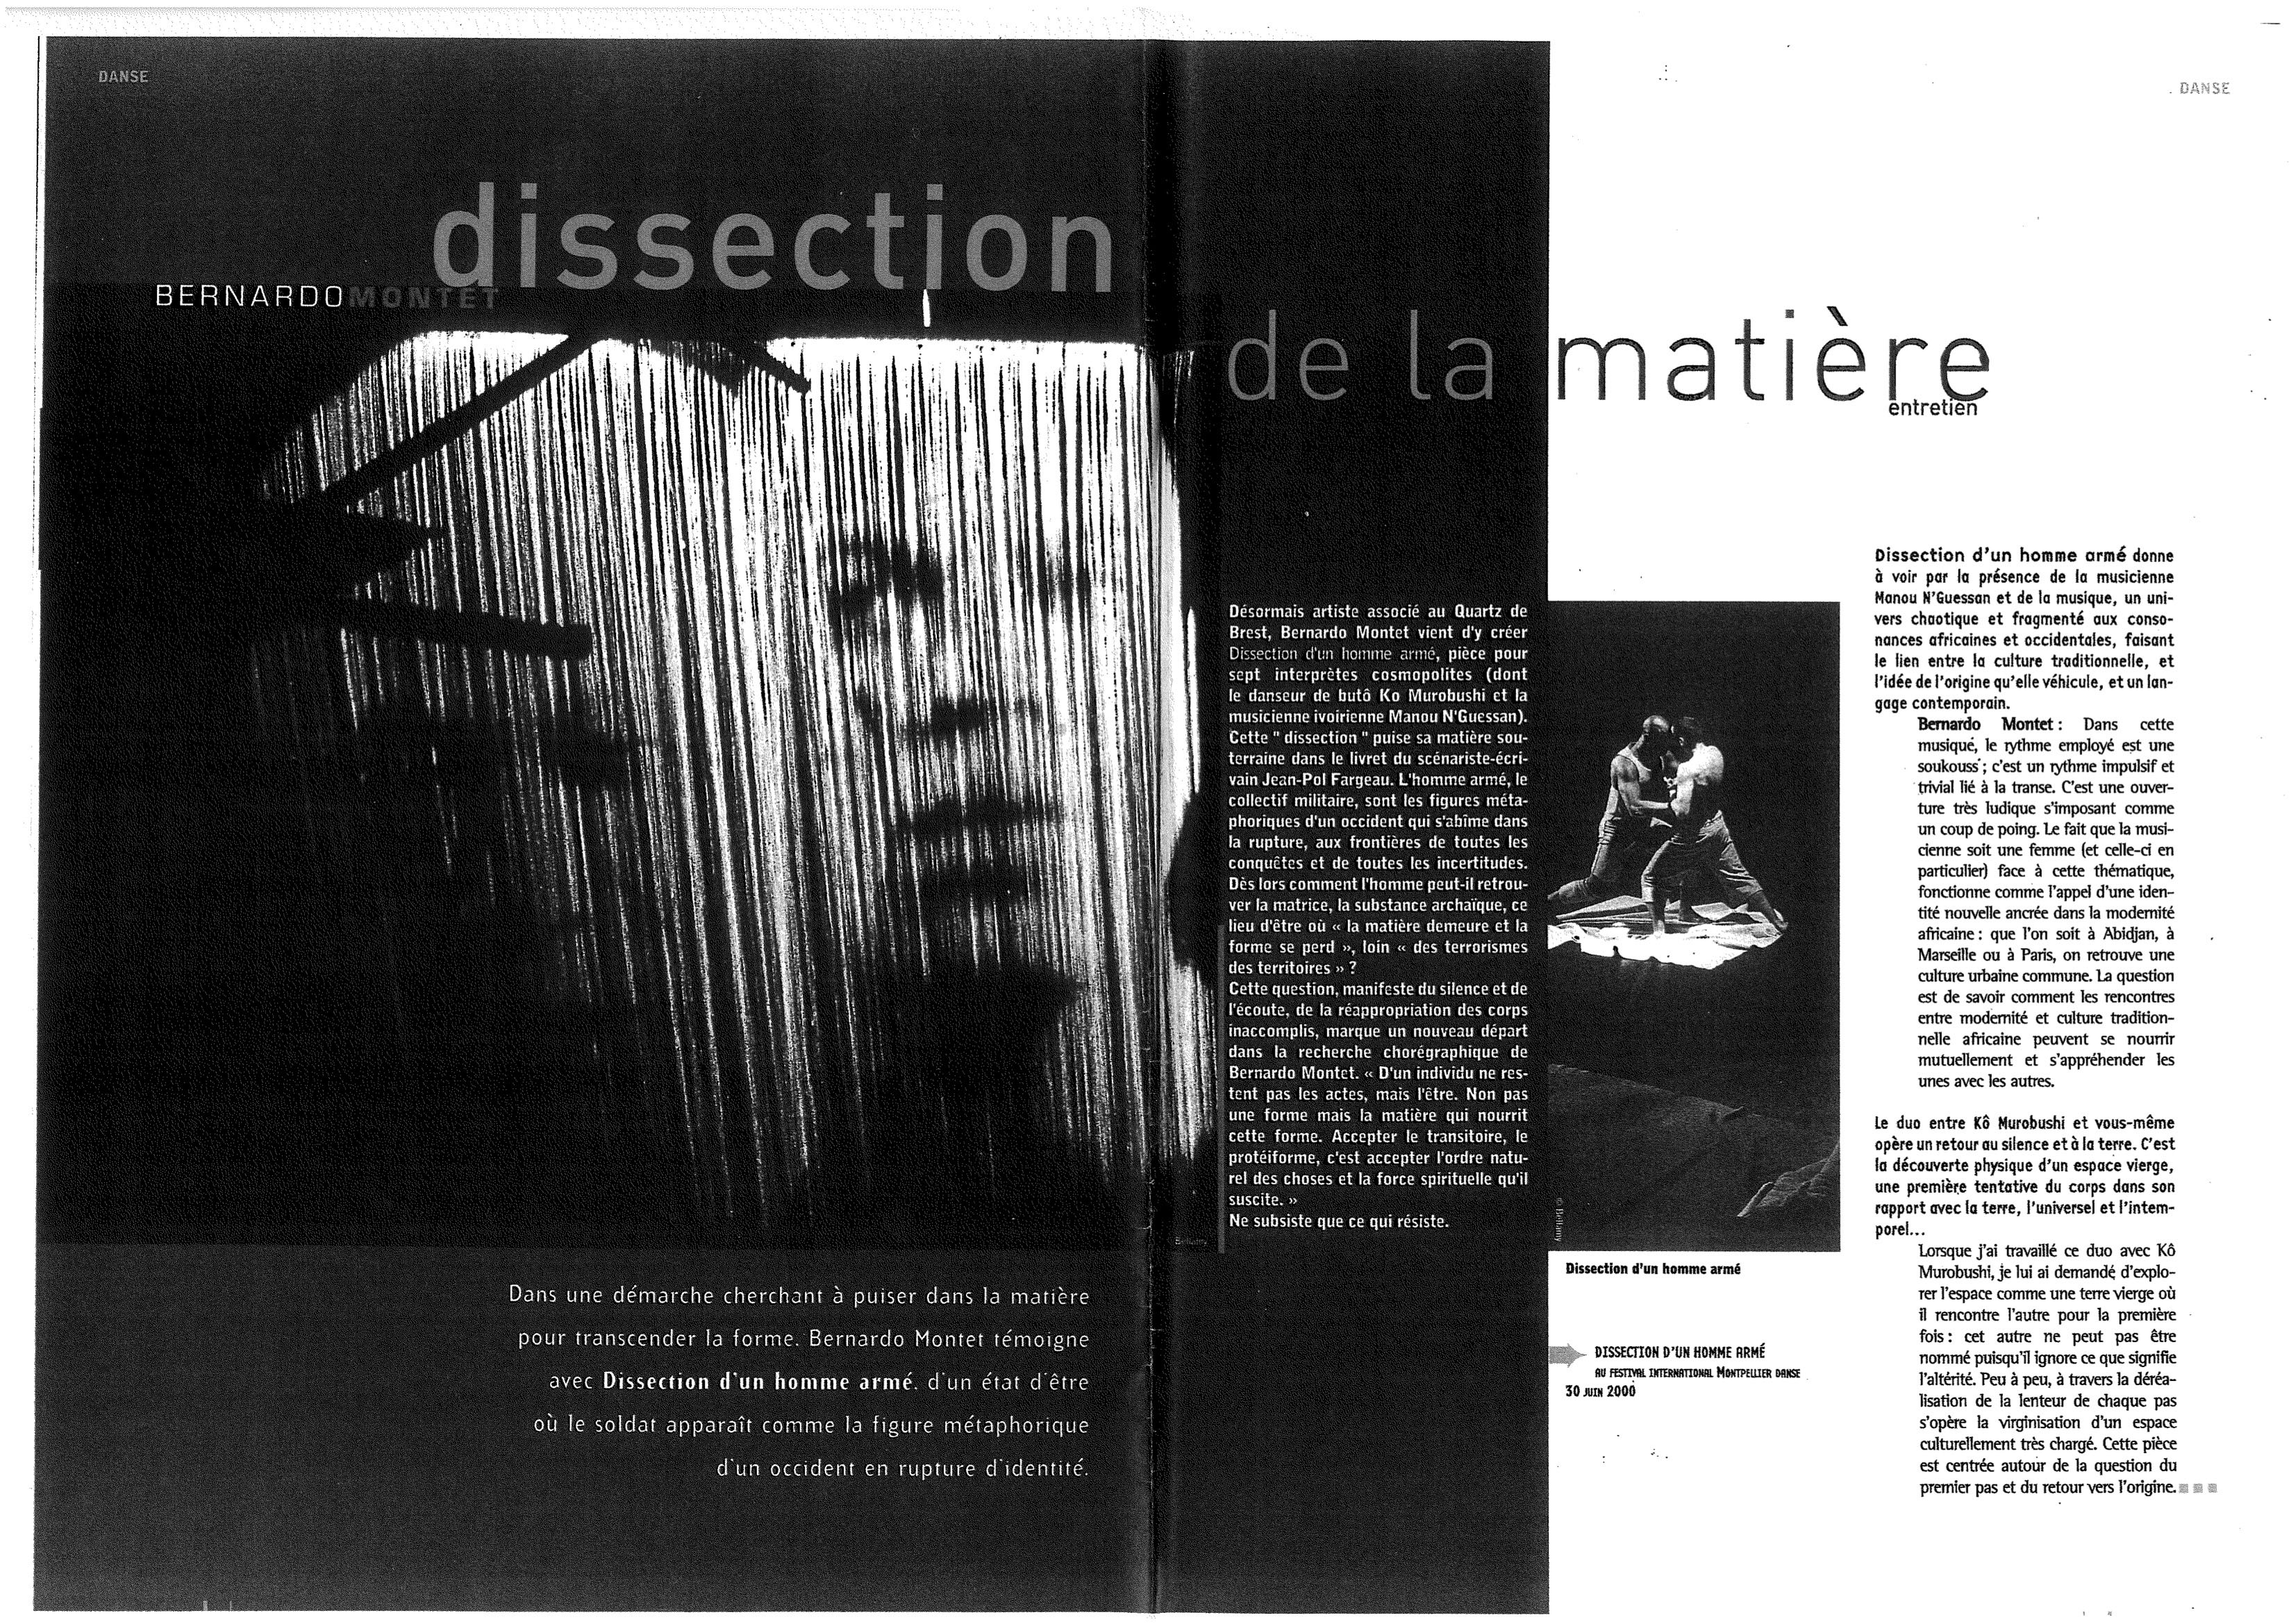 """Dissection d'un homme arme""[Program, p1]"